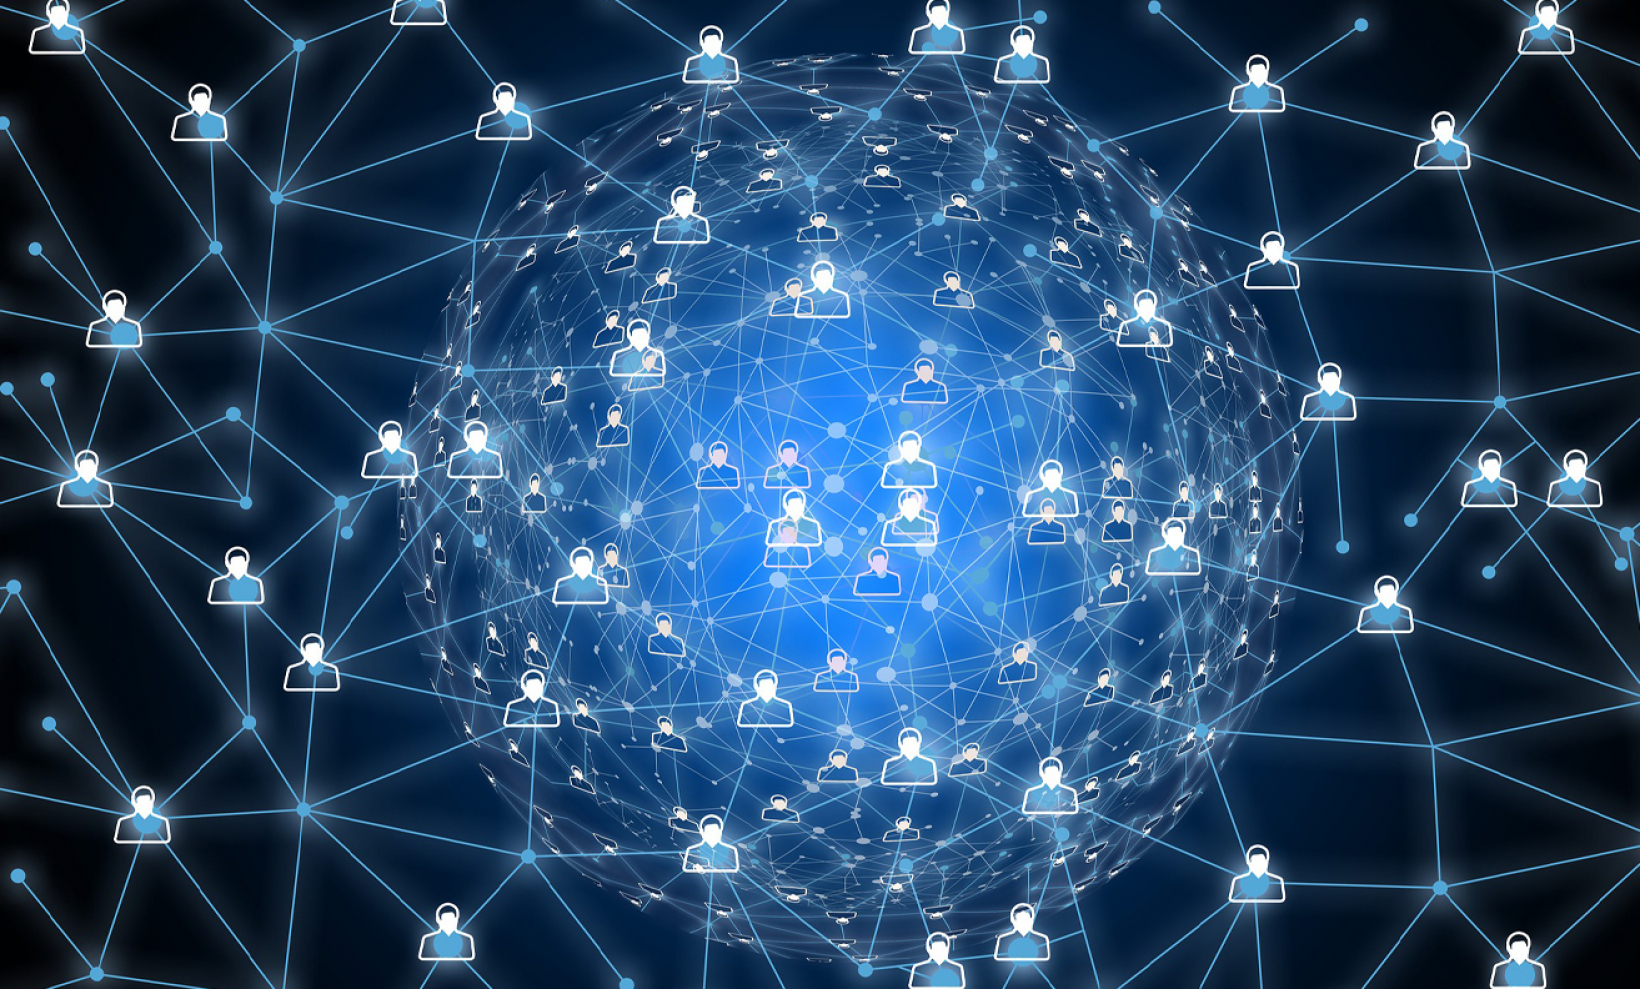 The Secure Connectivity Initiative will provide secure communication services to the EU and its Member States as well as broadband connectivity for European citizens, private companies and governmental authorities.